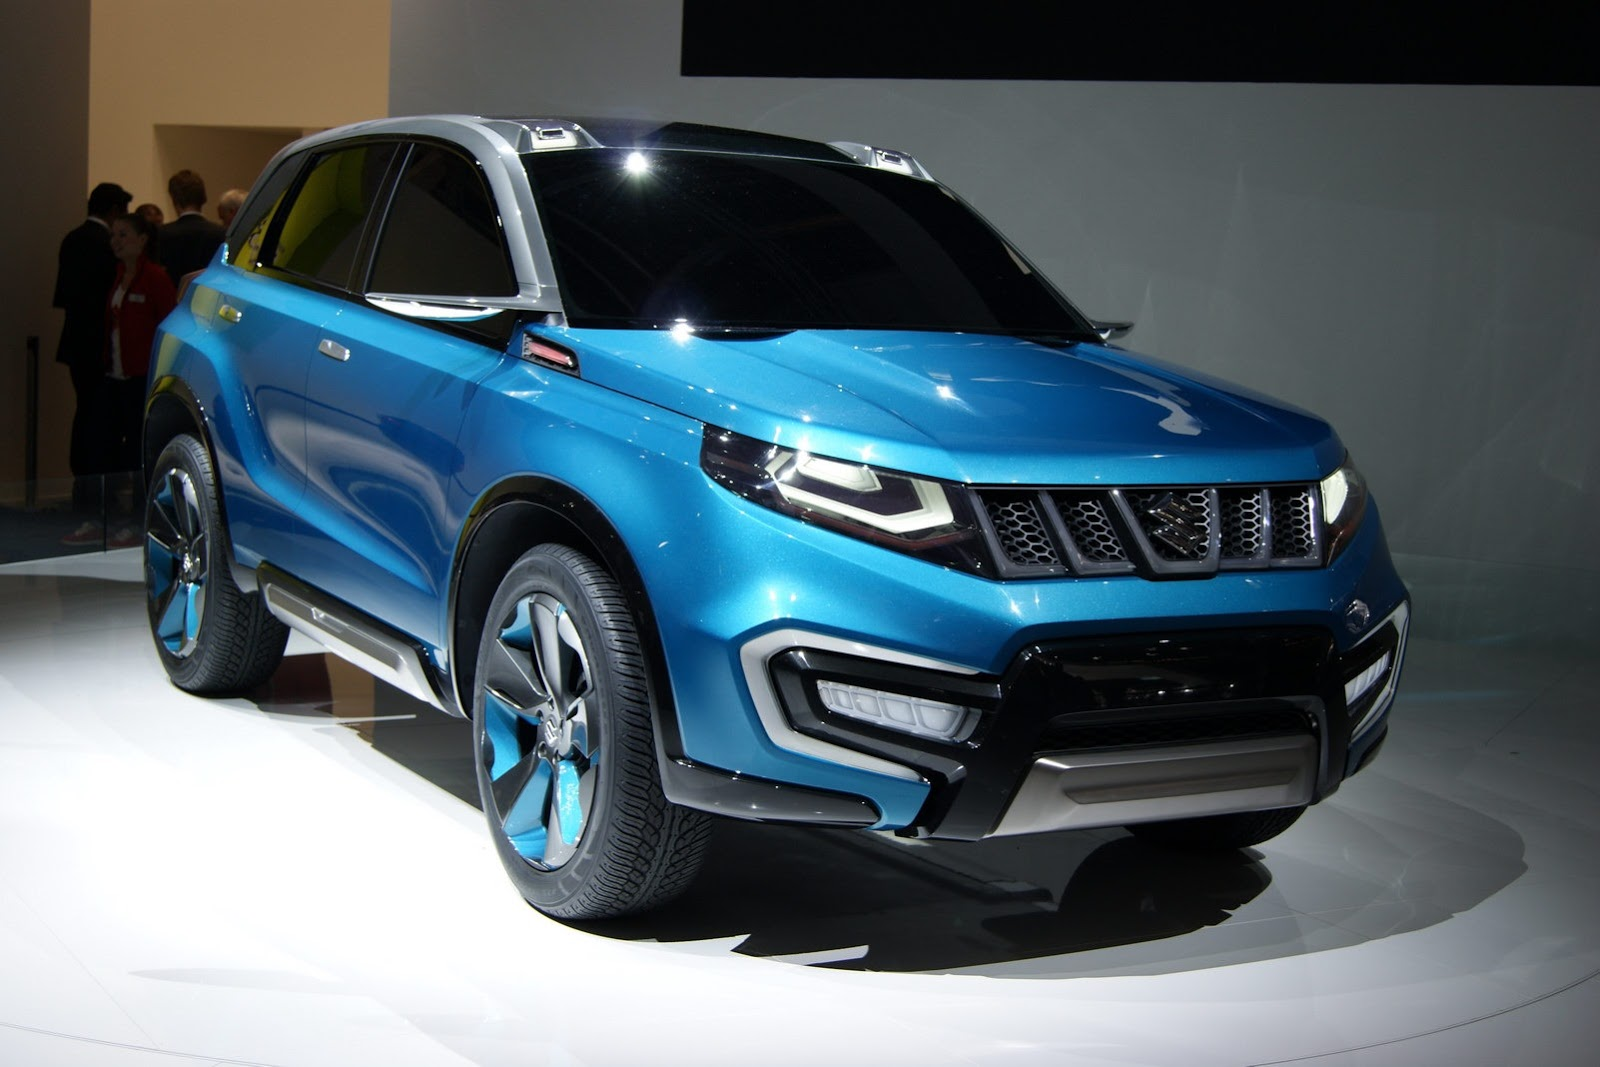 suzuki iv 4 compact suv concept unveiled at frankfurt. Black Bedroom Furniture Sets. Home Design Ideas